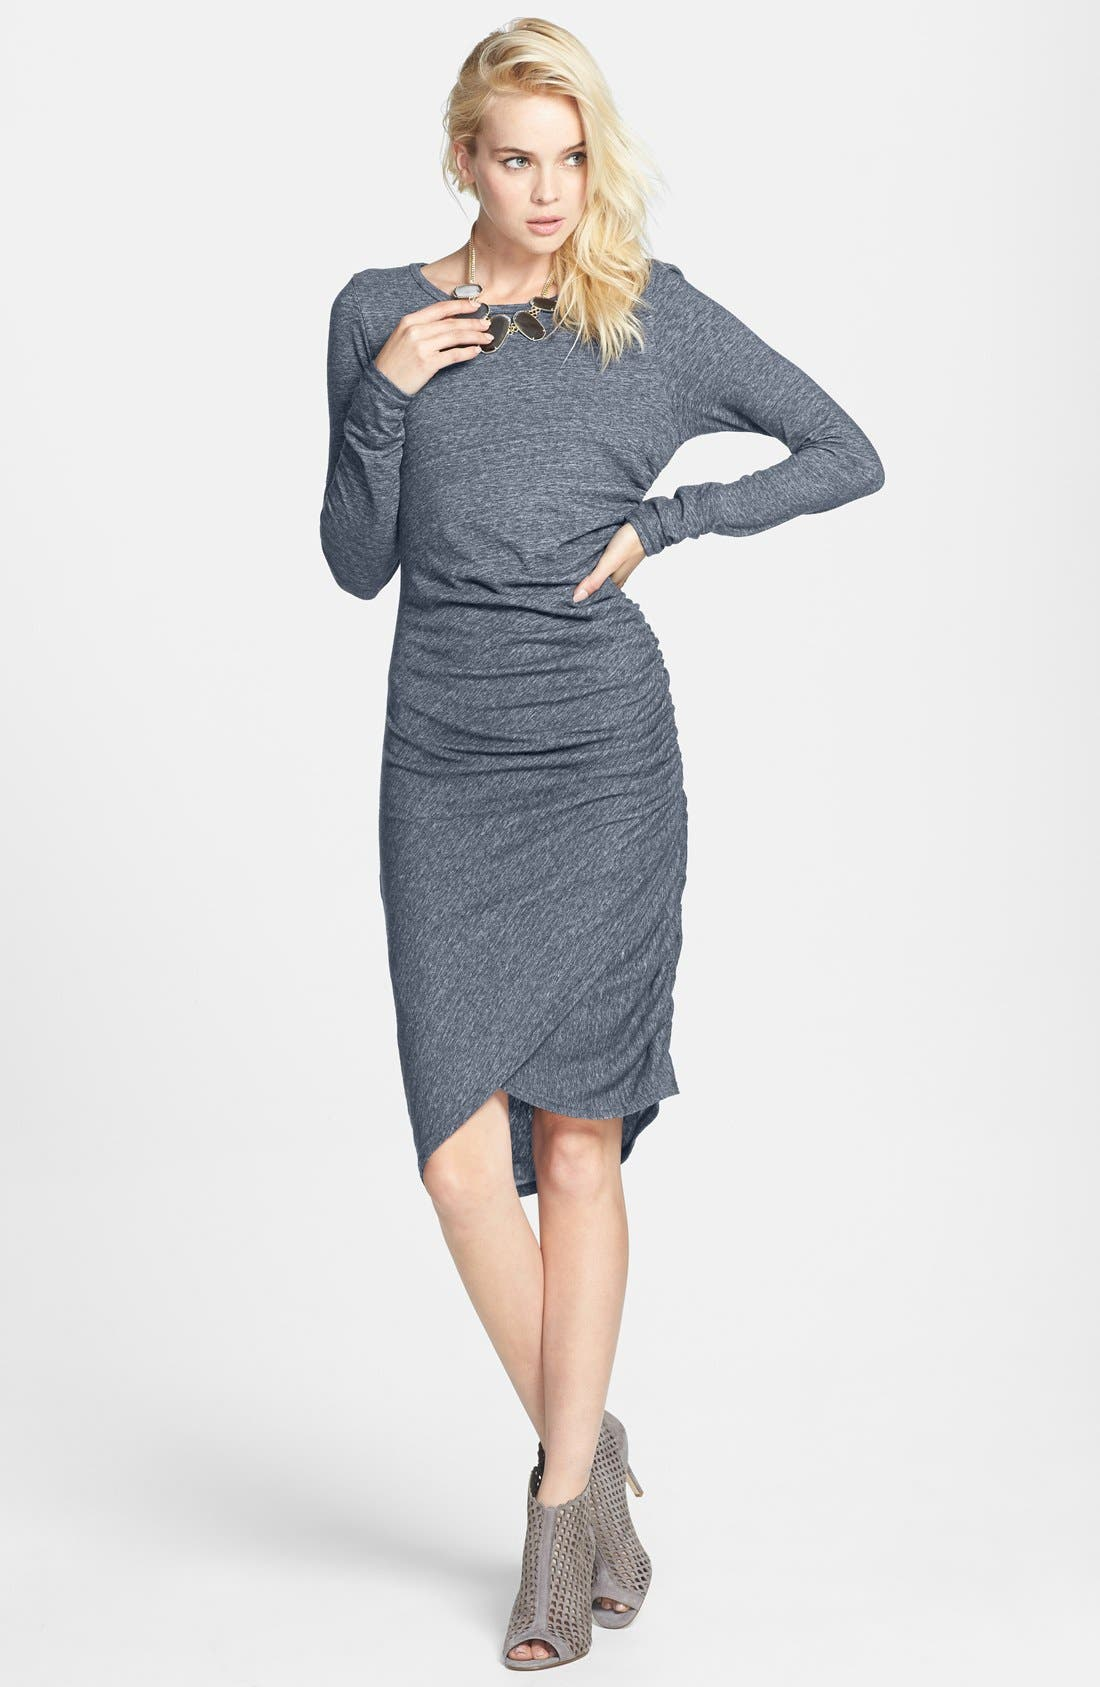 Ruched Long Sleeve Dress,                             Alternate thumbnail 12, color,                             001